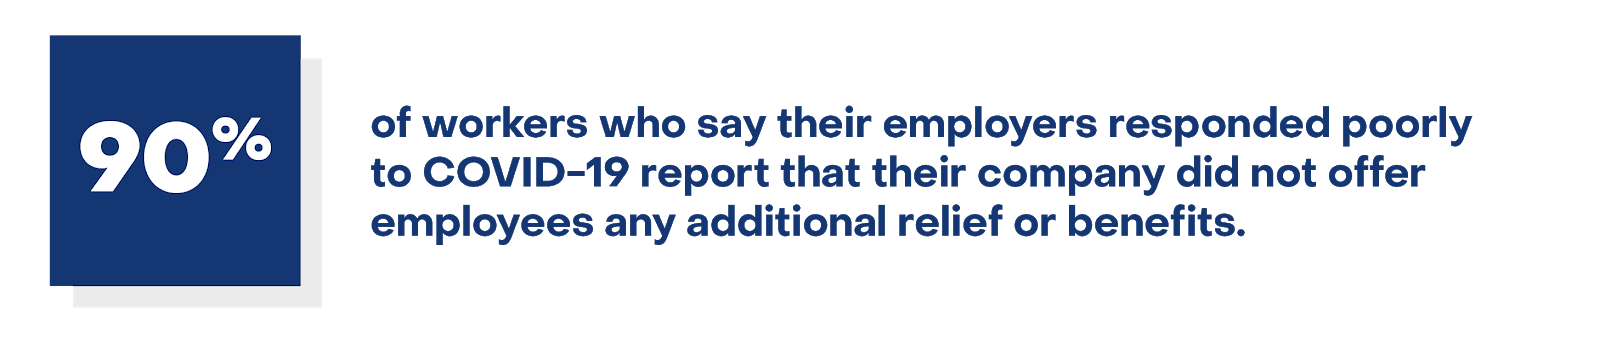 90% of workers who say their employer had a poor COVID response did not receive any additional relief or benefits